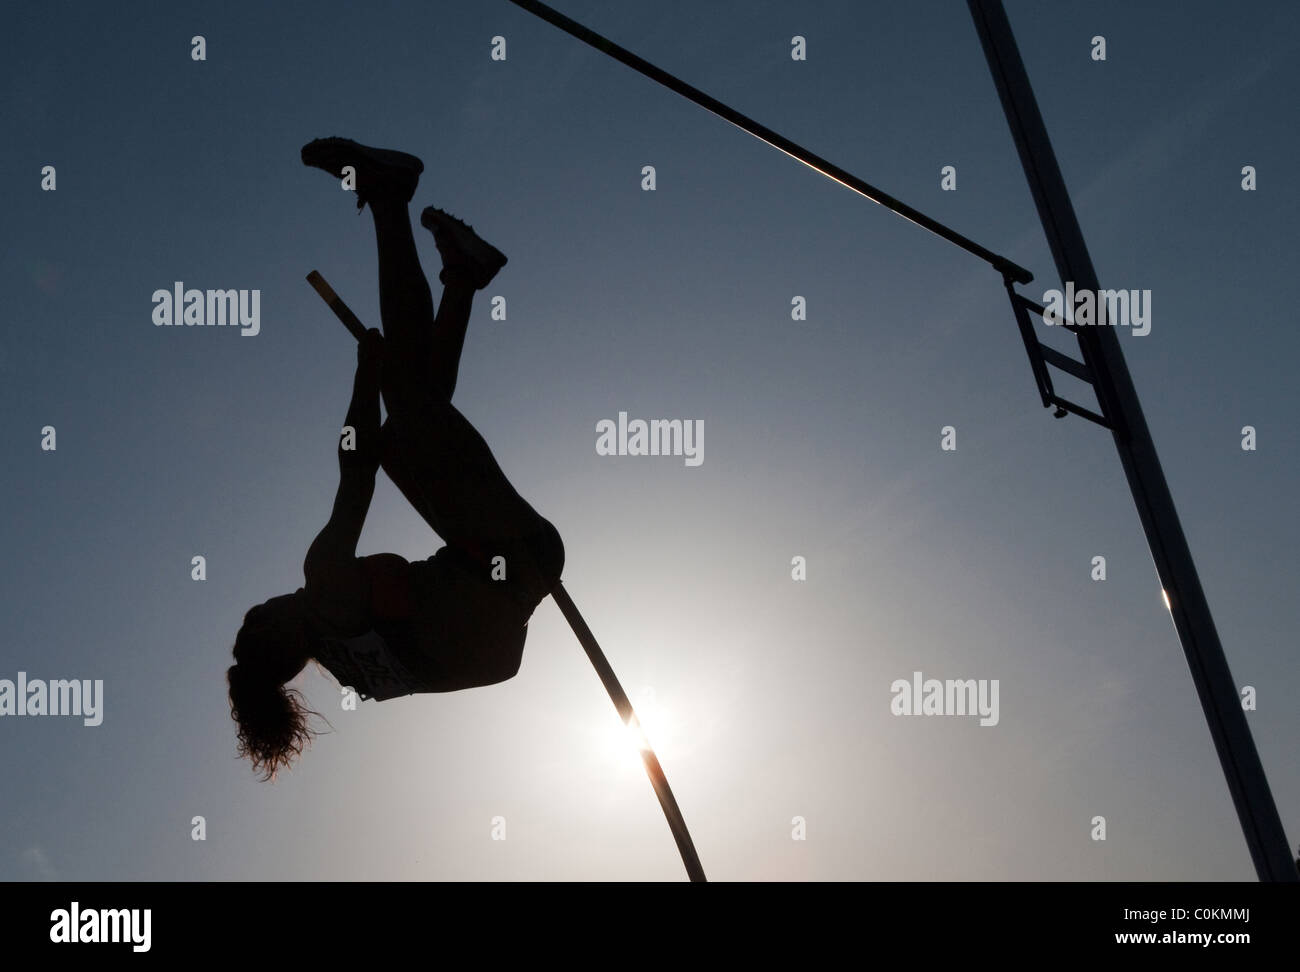 pole vaulting Sport outdoor Athletics competition race woman athlete. Championships of Spain, July 3rd 4th 2010 - Stock Image